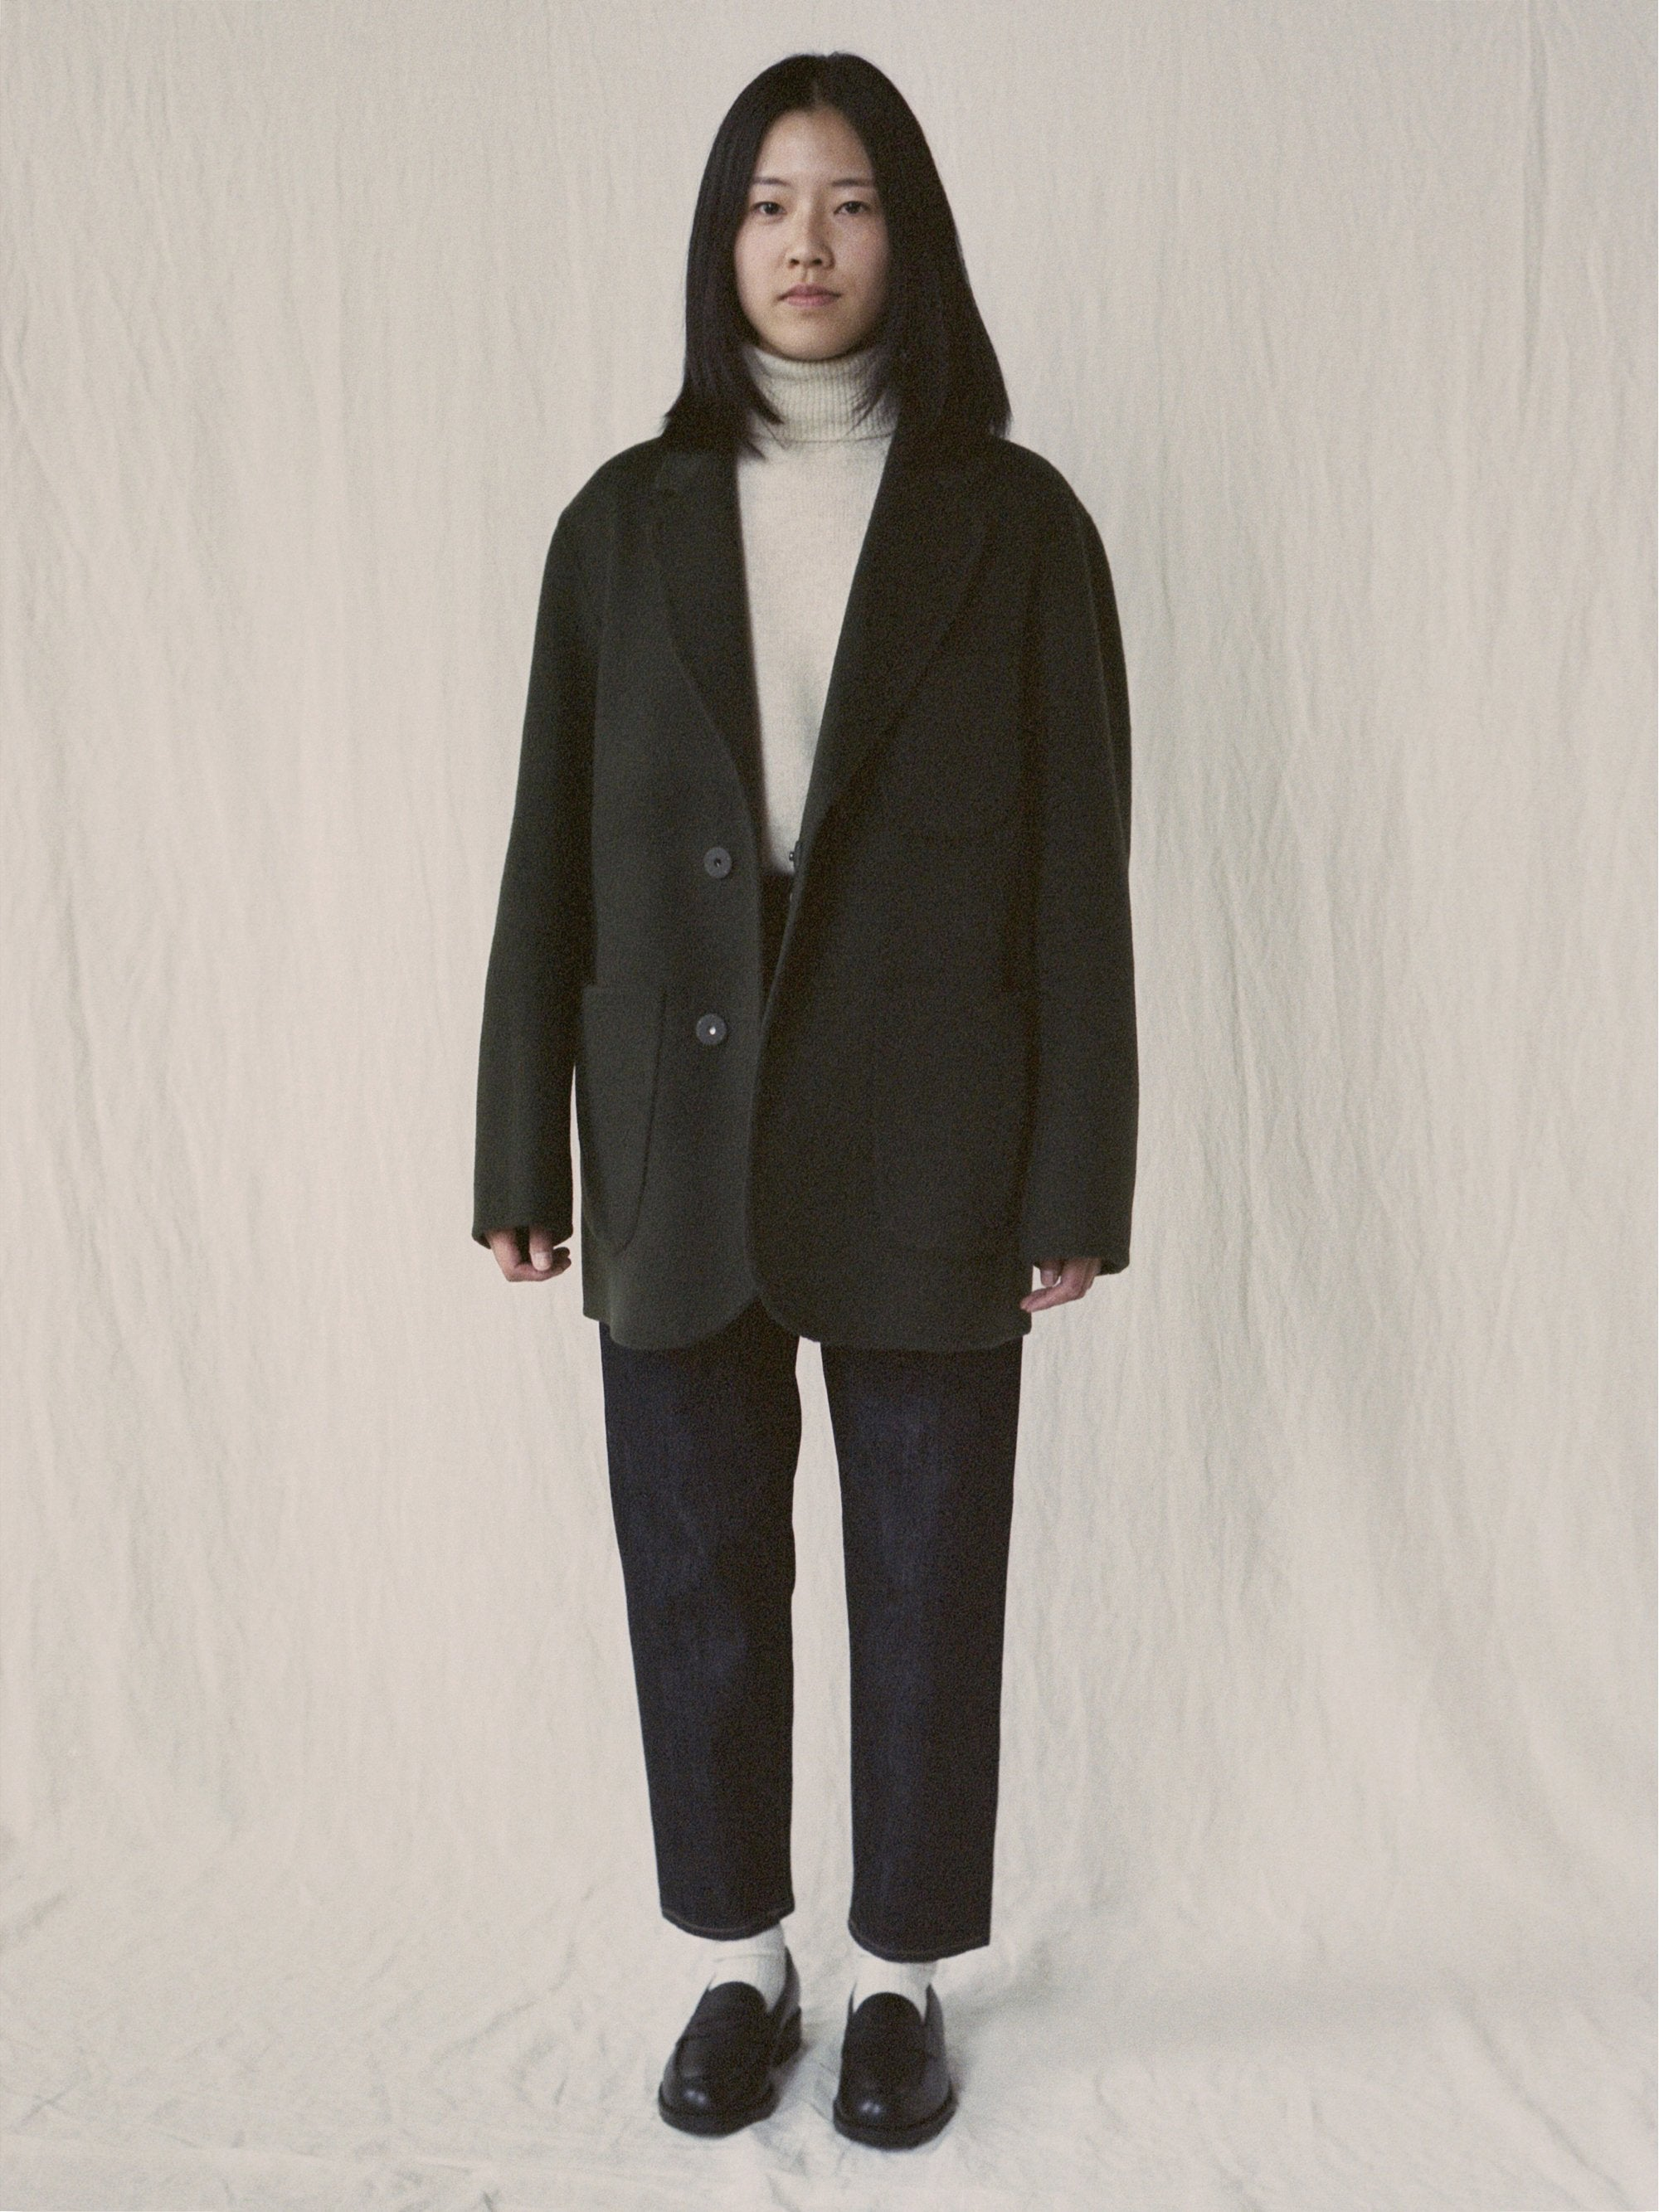 Namu Shop - Document Handmade Tailored Collar Jacket - Green